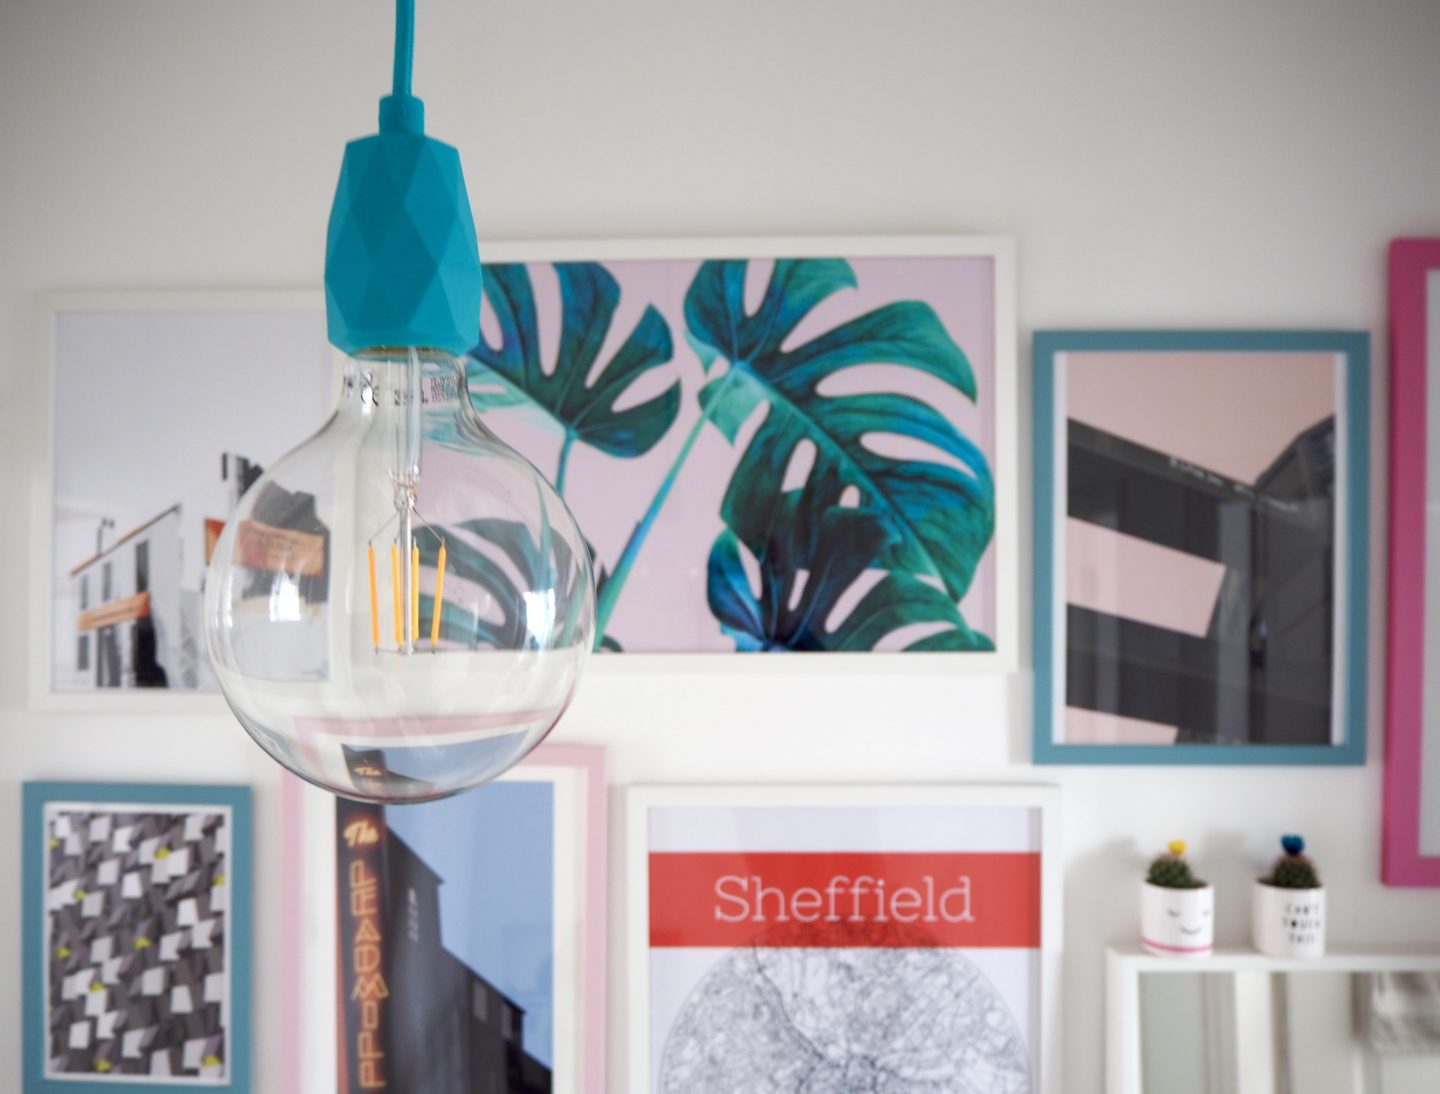 A SHEFFIELD THEMED GALLERY WALL